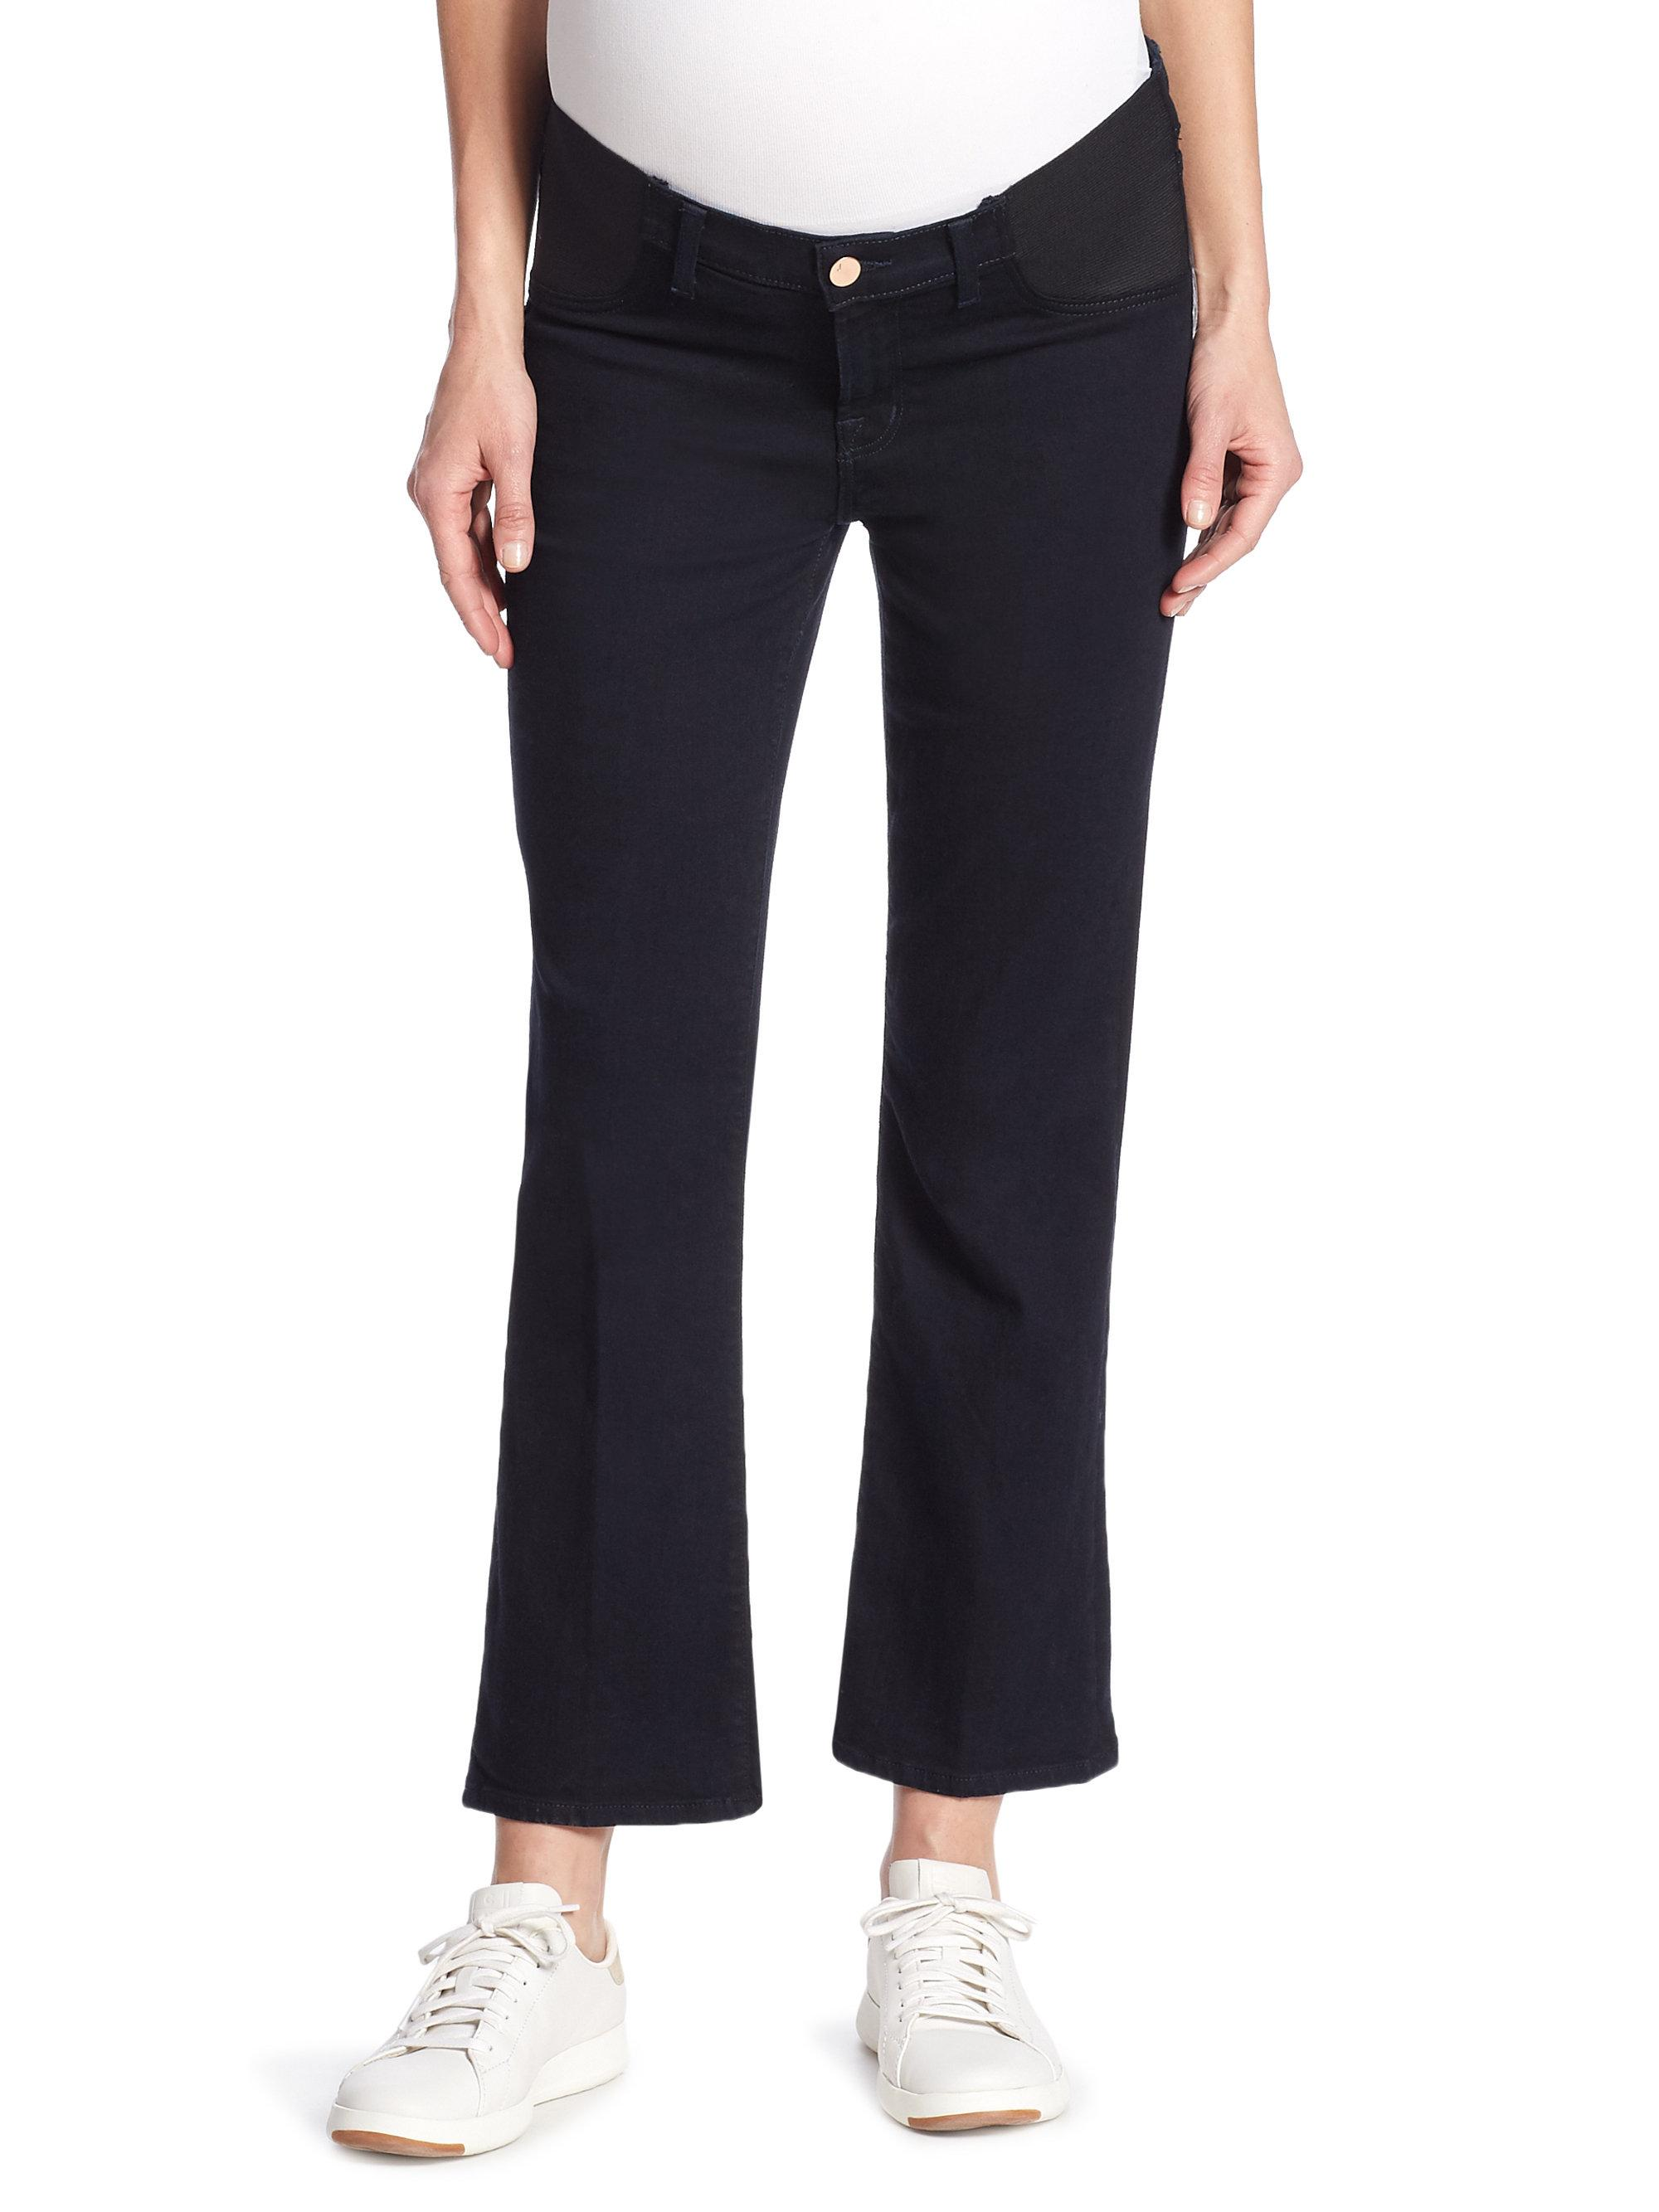 Shop stylish maternity jeans including low rise jeans, roll panel, full panel, boot cut jeans, wide leg jeans & real waist jeans.